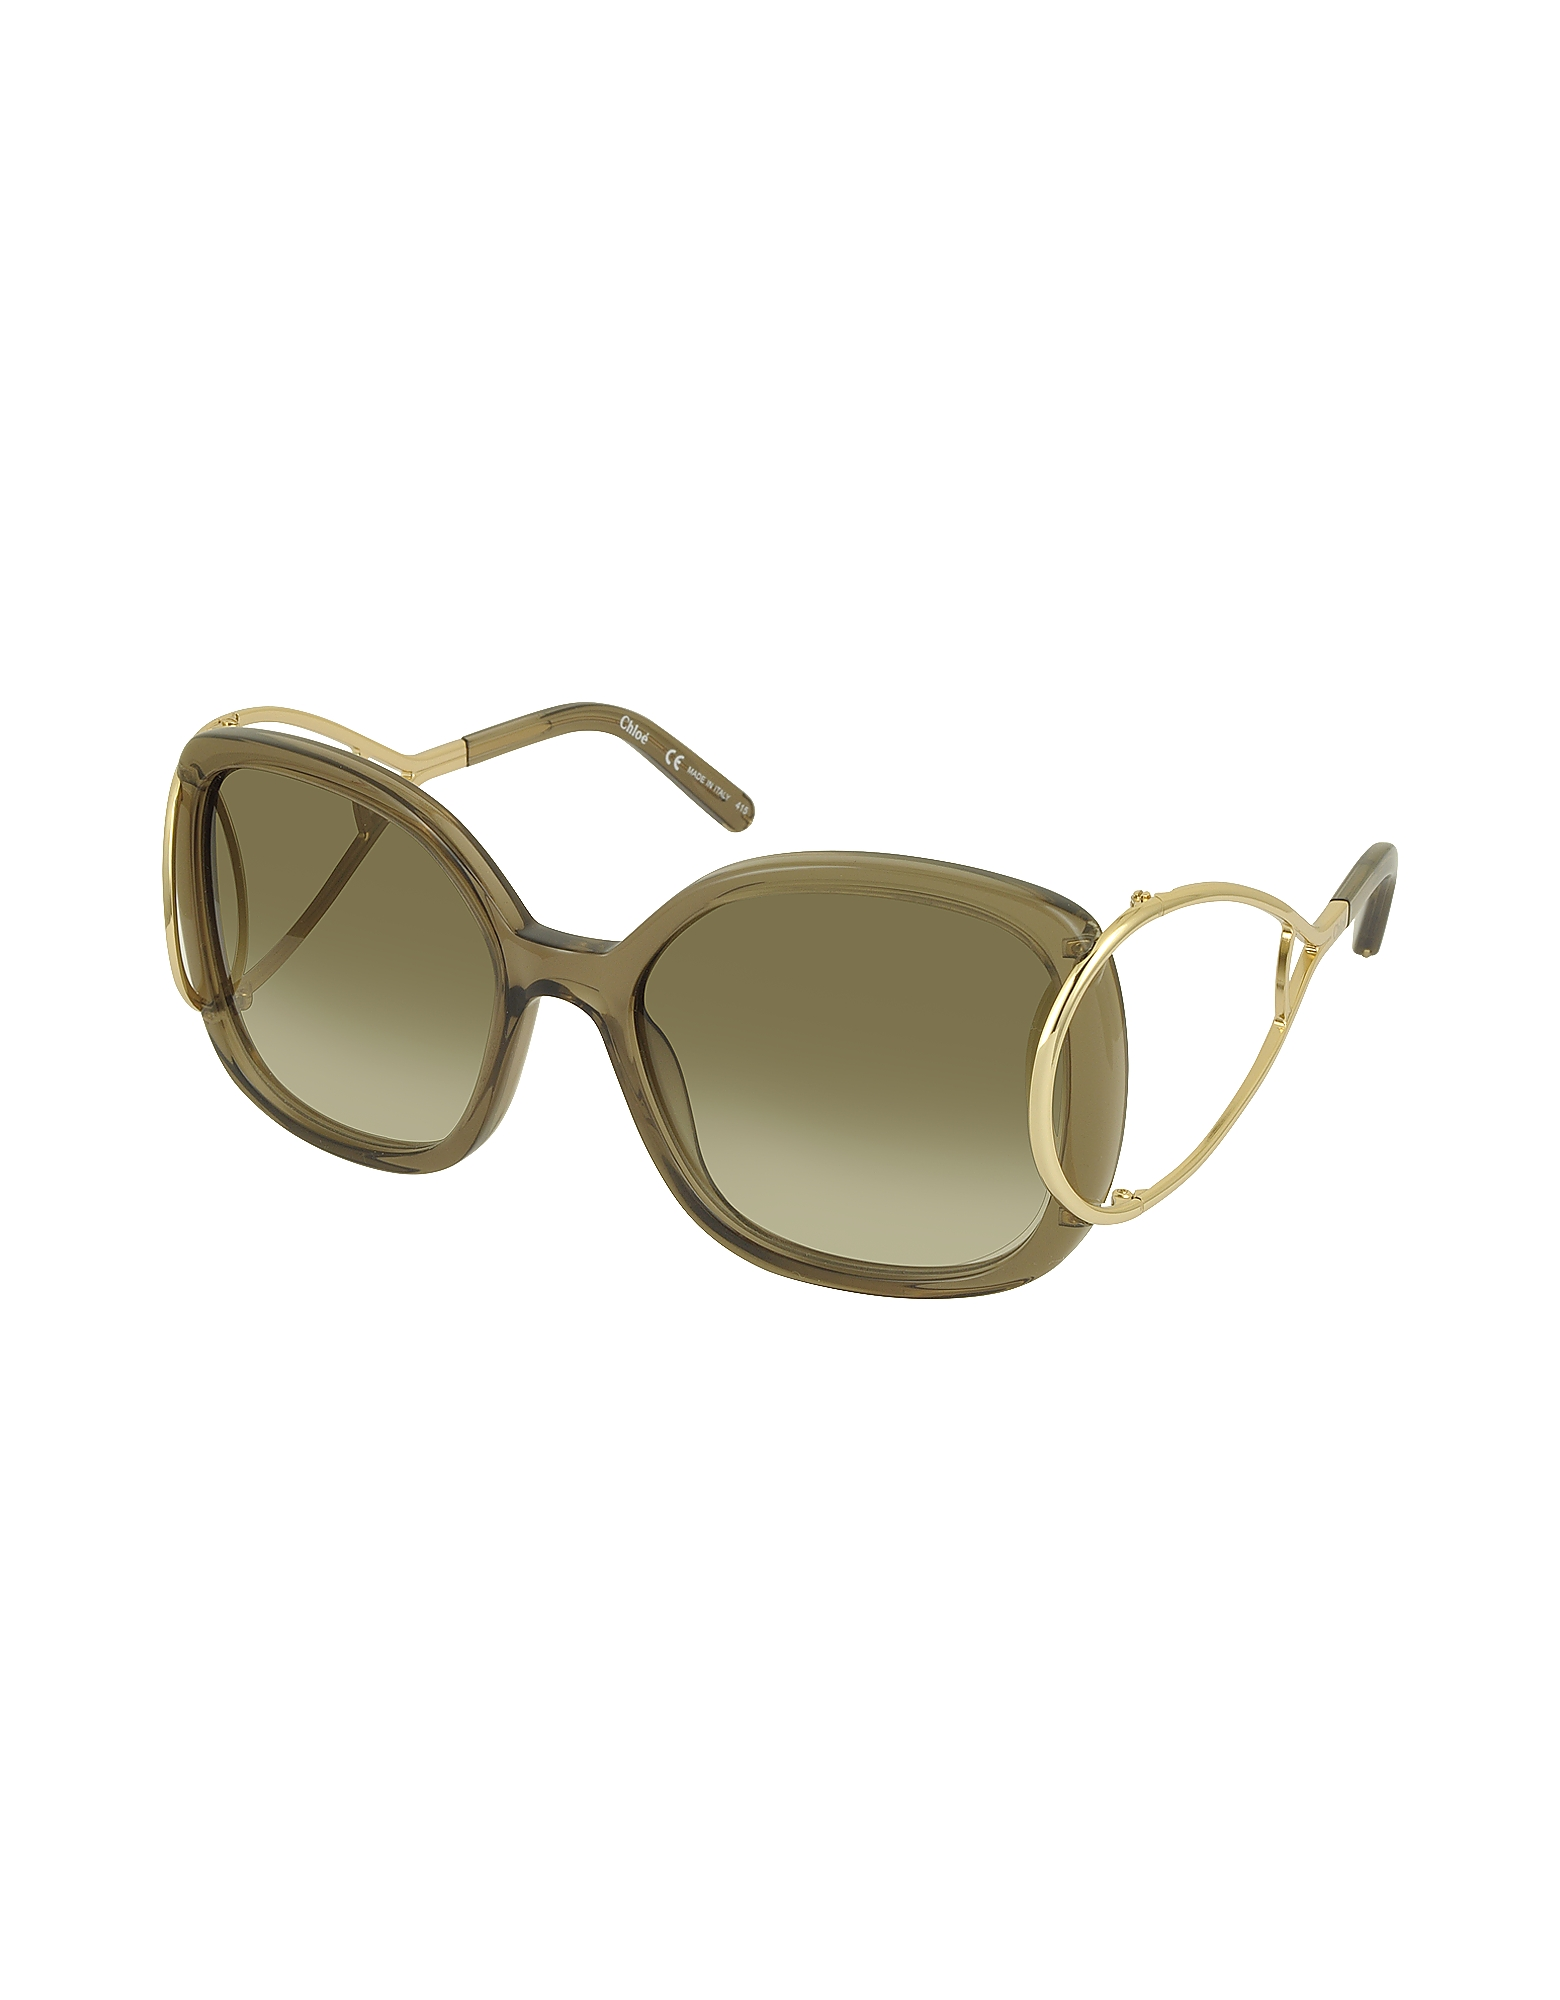 JACKSON CE 702S Large Square Acetate & Metal Women's Sunglasses от Forzieri.com INT